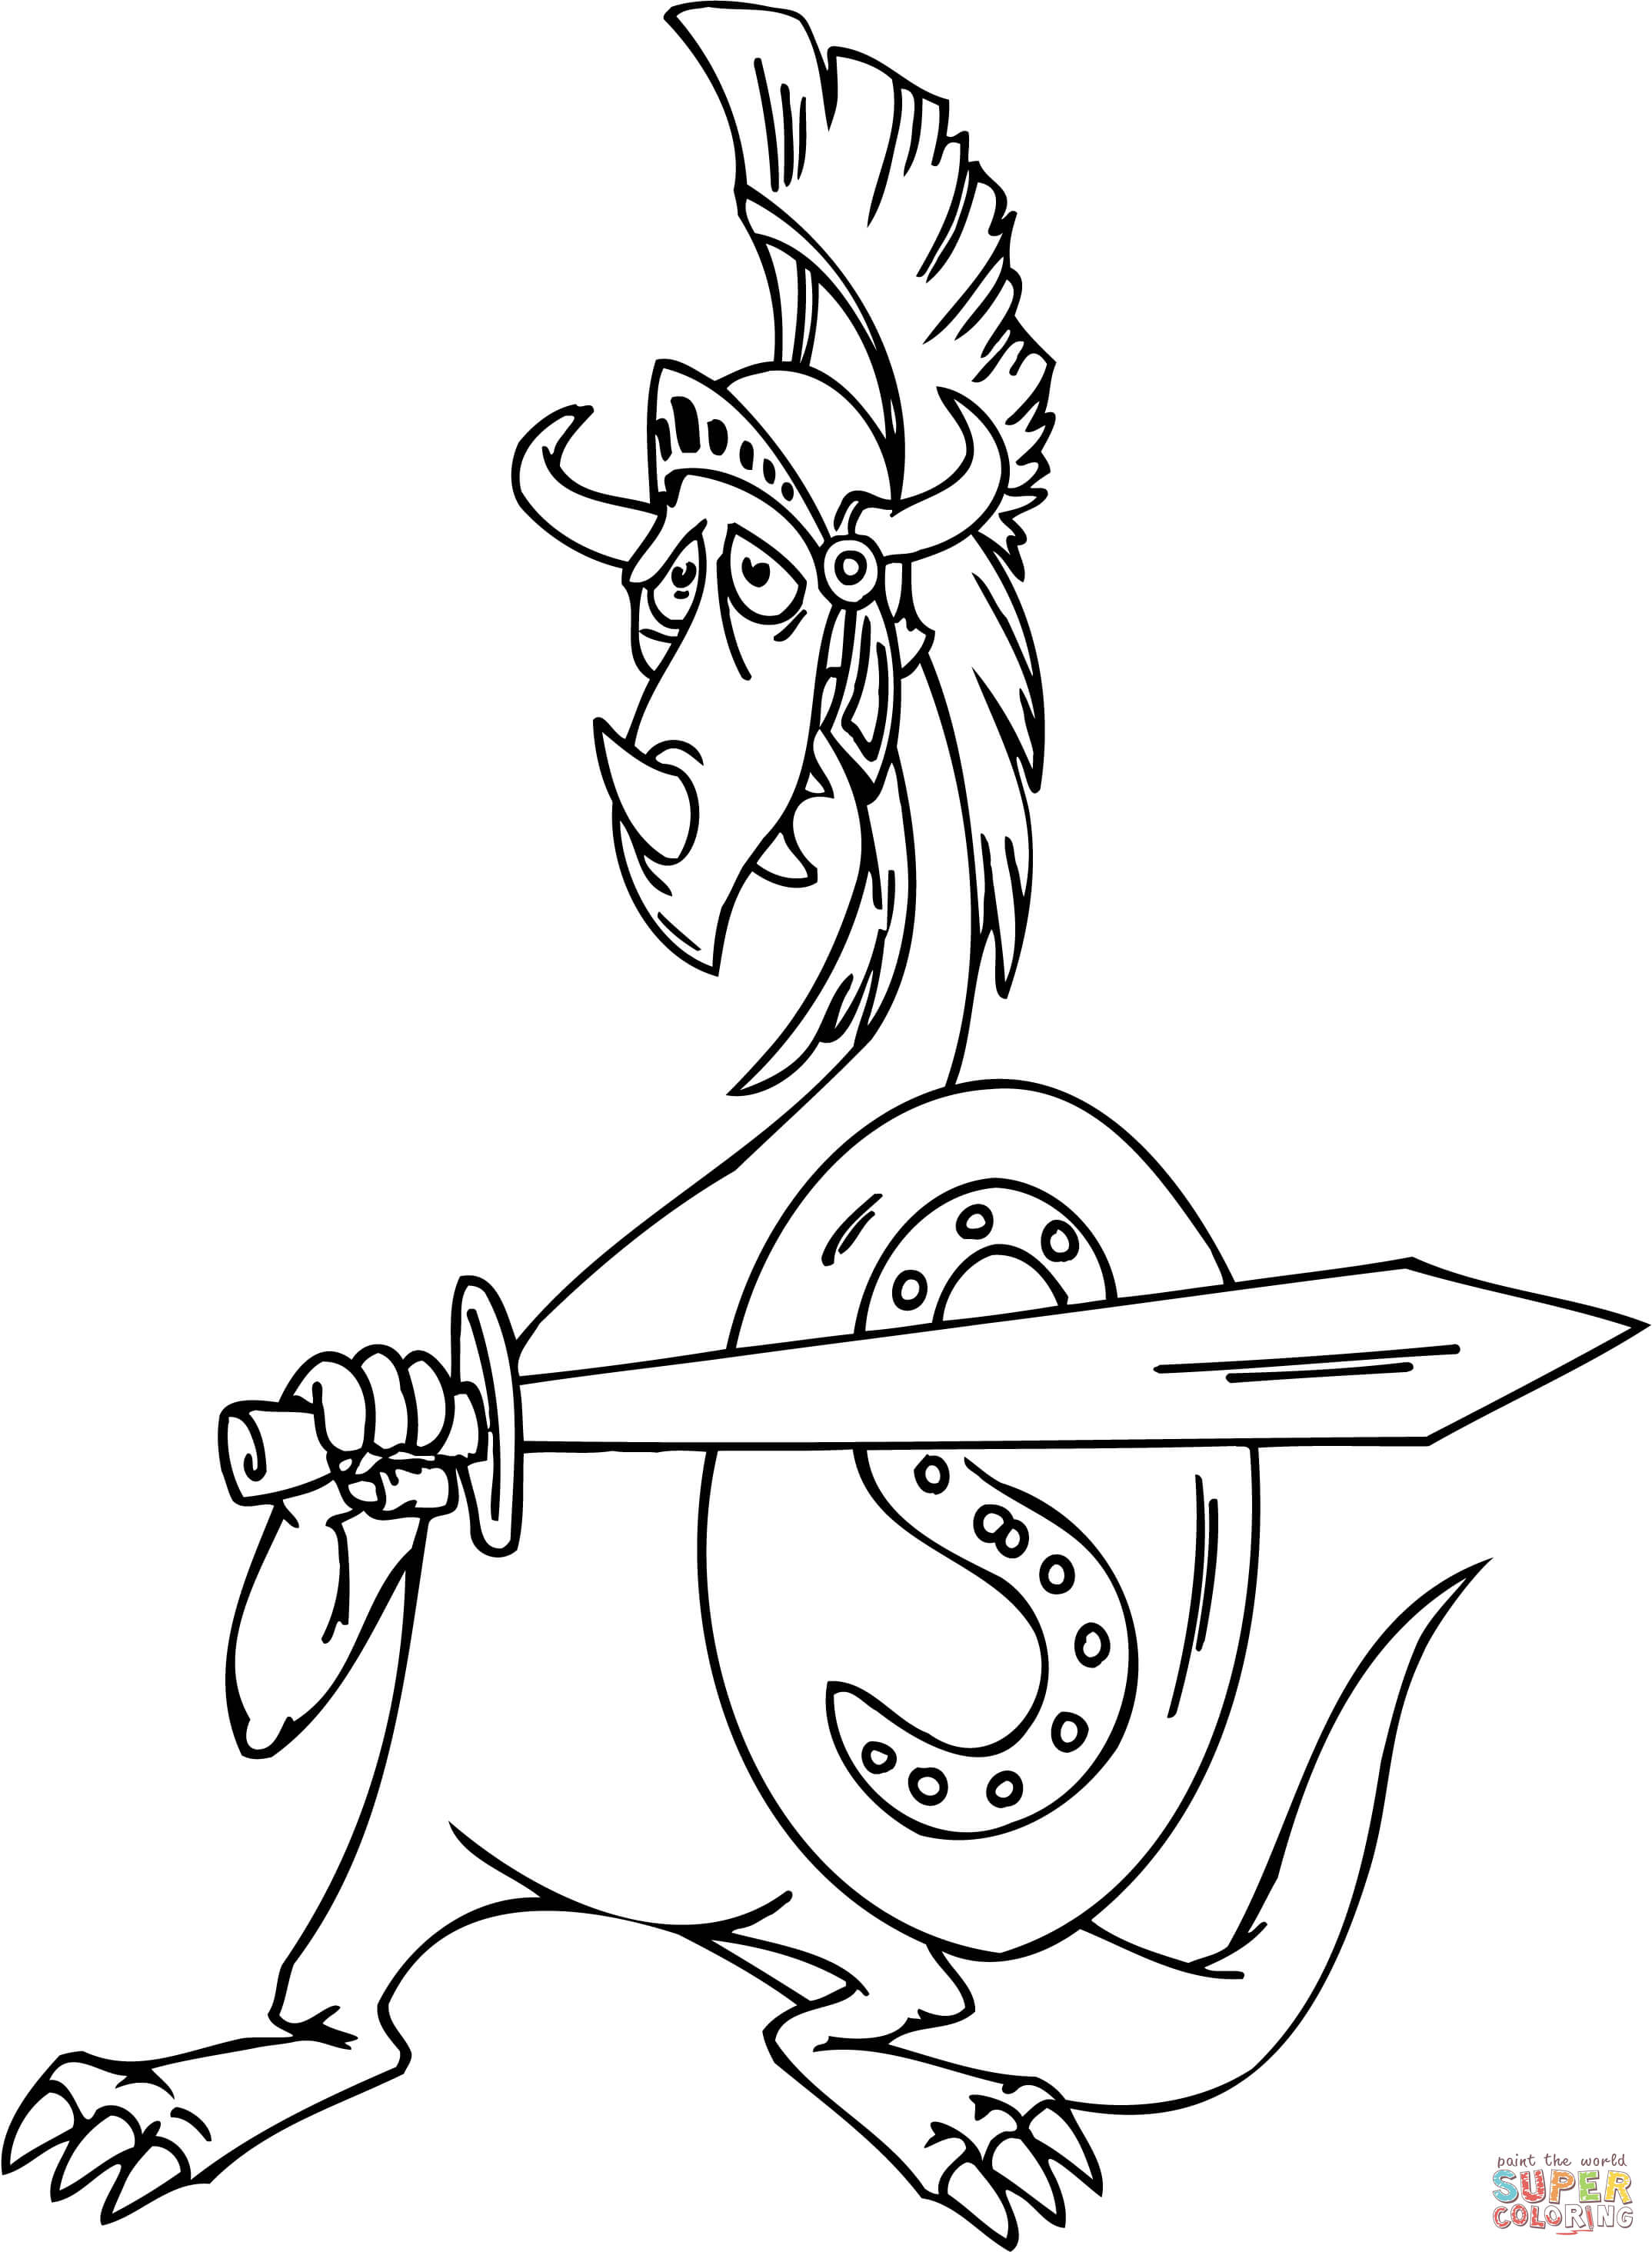 Dragon As A Gladiator Coloring Page Free Printable